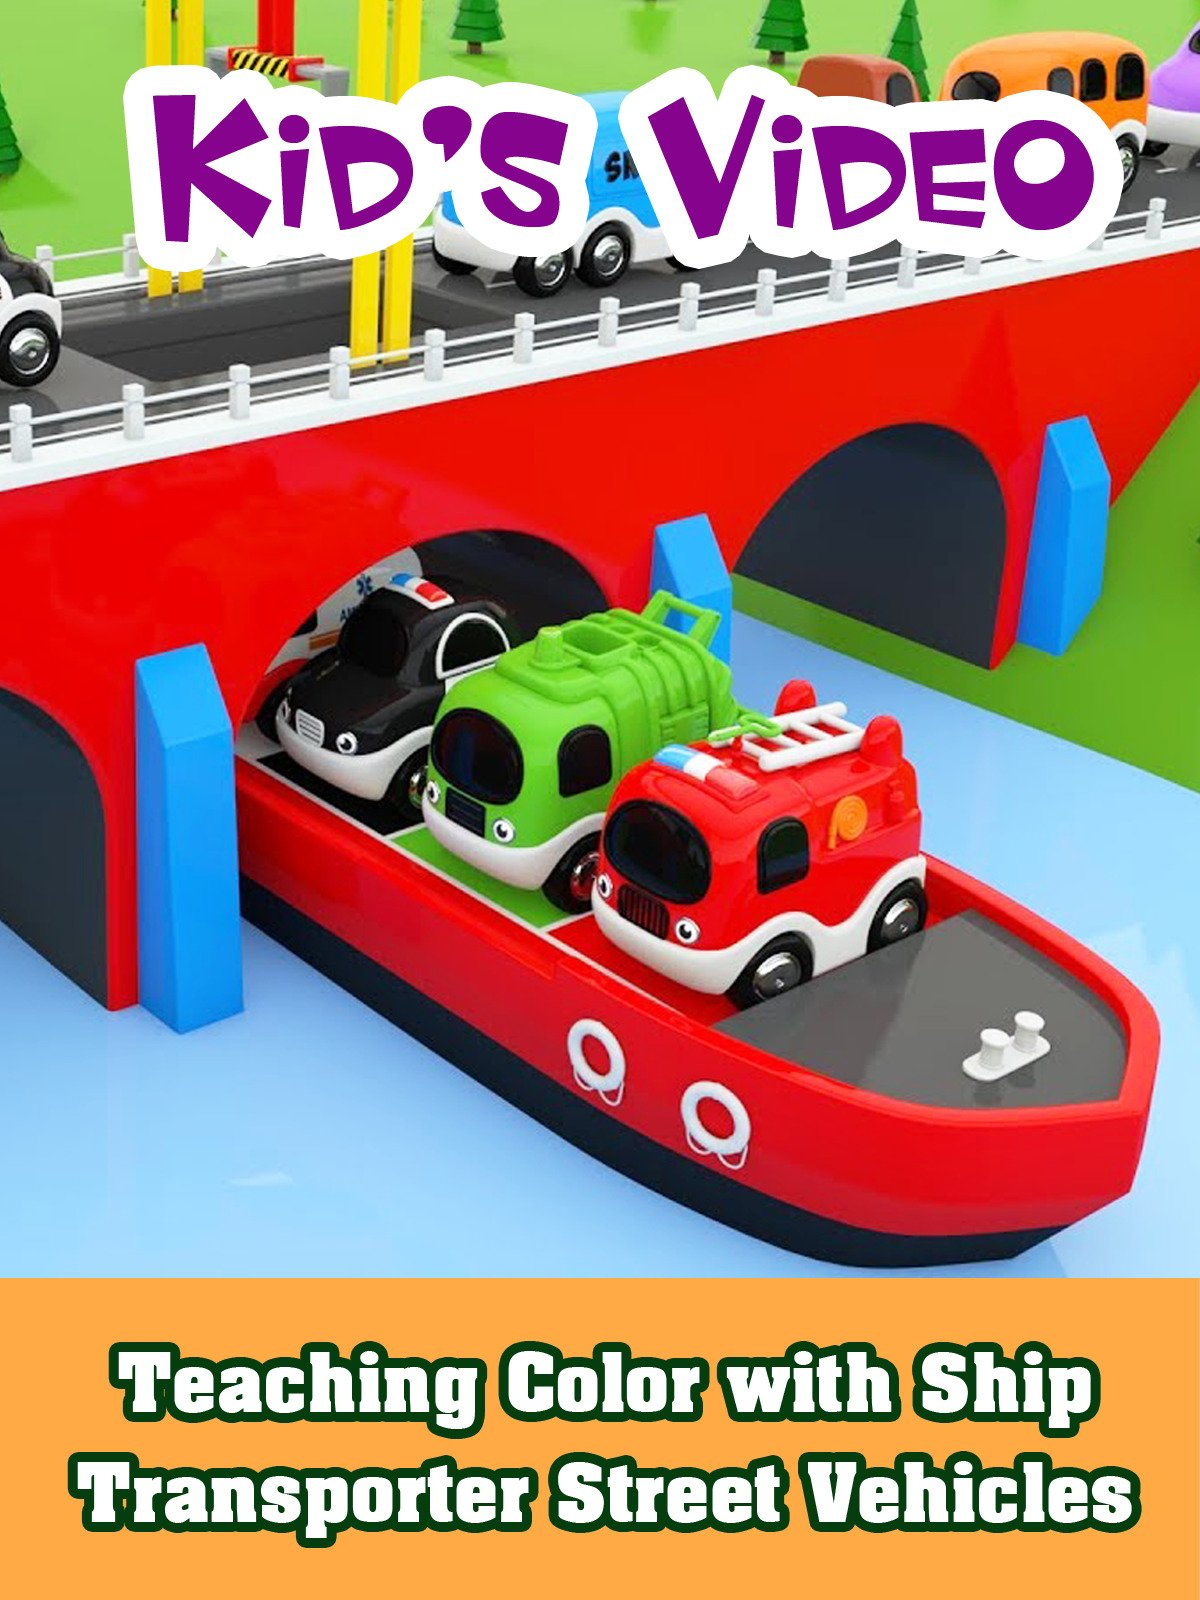 Teaching Color with Ship Transporter Street Vehicles